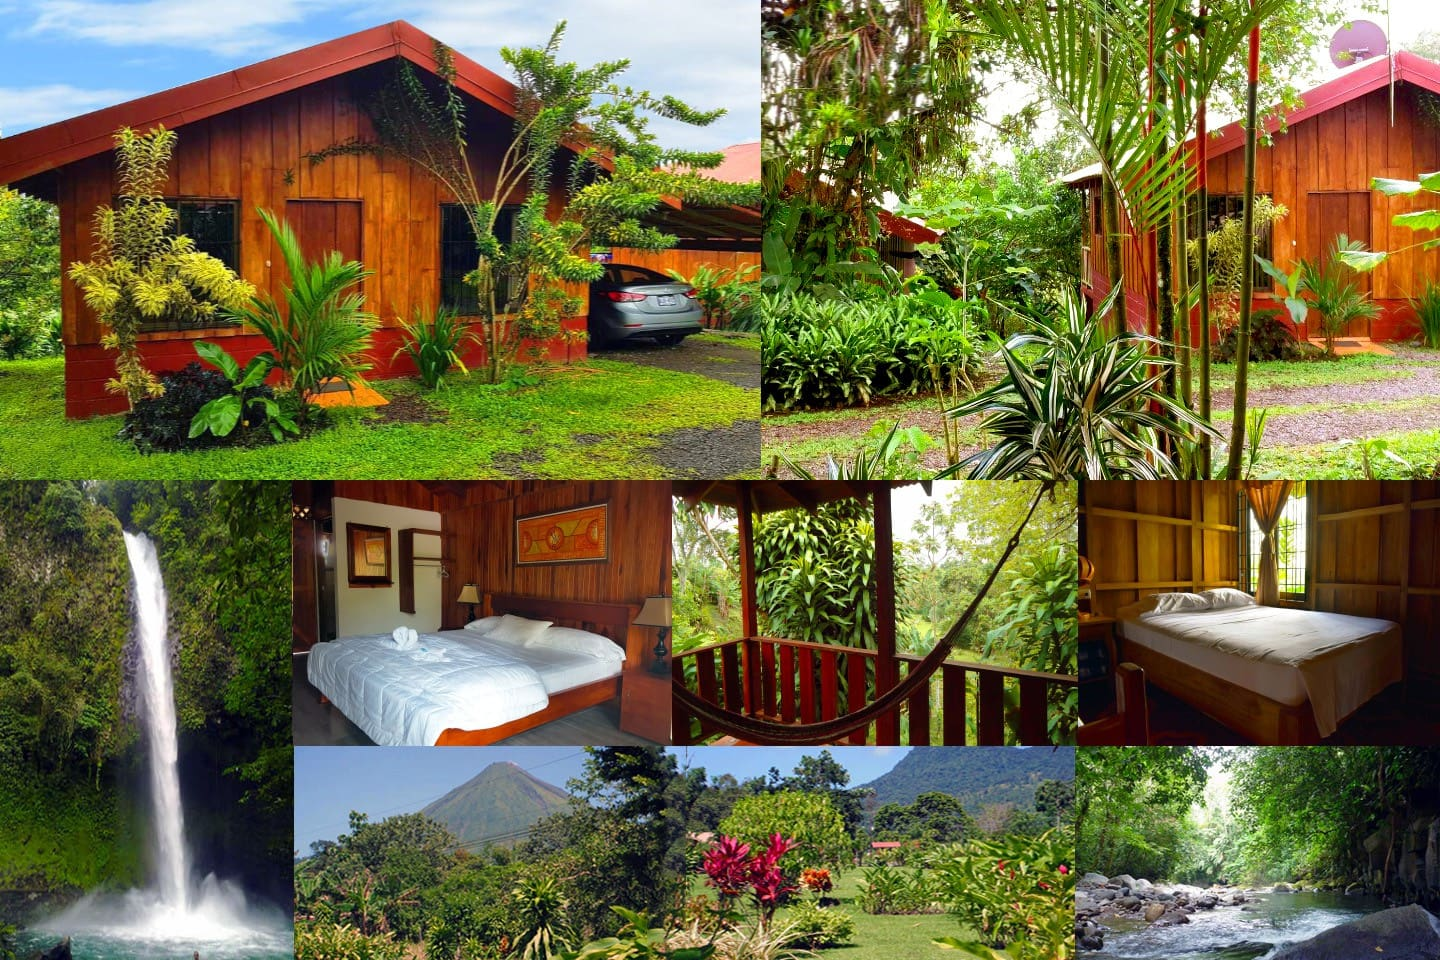 Tropical location, private and safe, Cabins are located along the river banks with a views of the Arenal Volcano, minutes to the waterfall and La Fortuna Central.